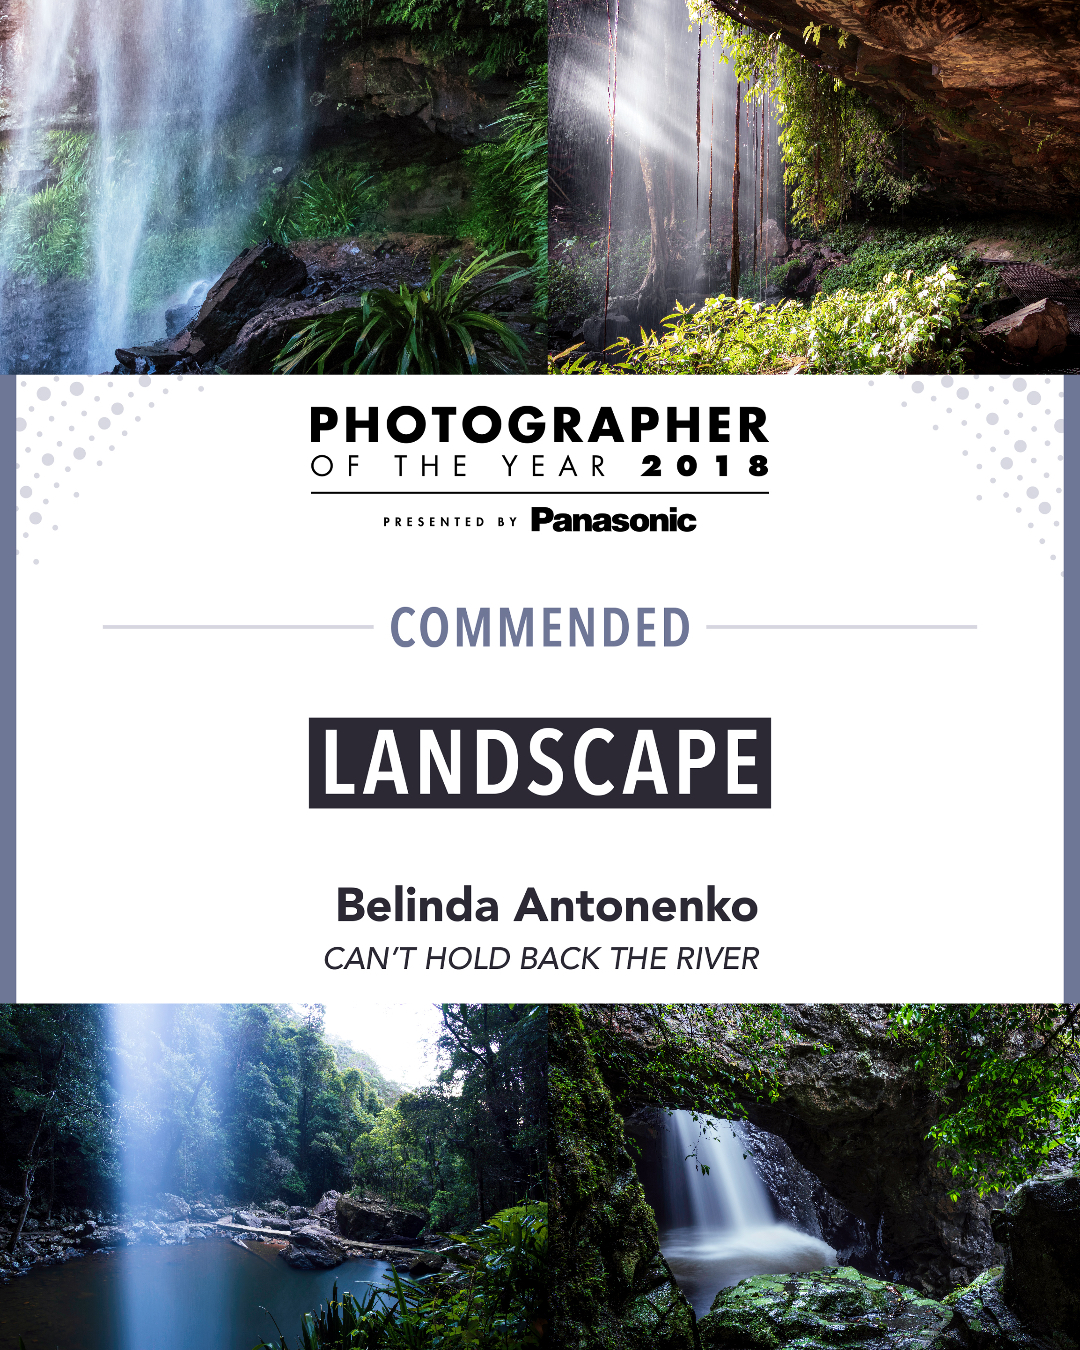 Photography - Photographer Of The Year Award - Can't Hold Back The River